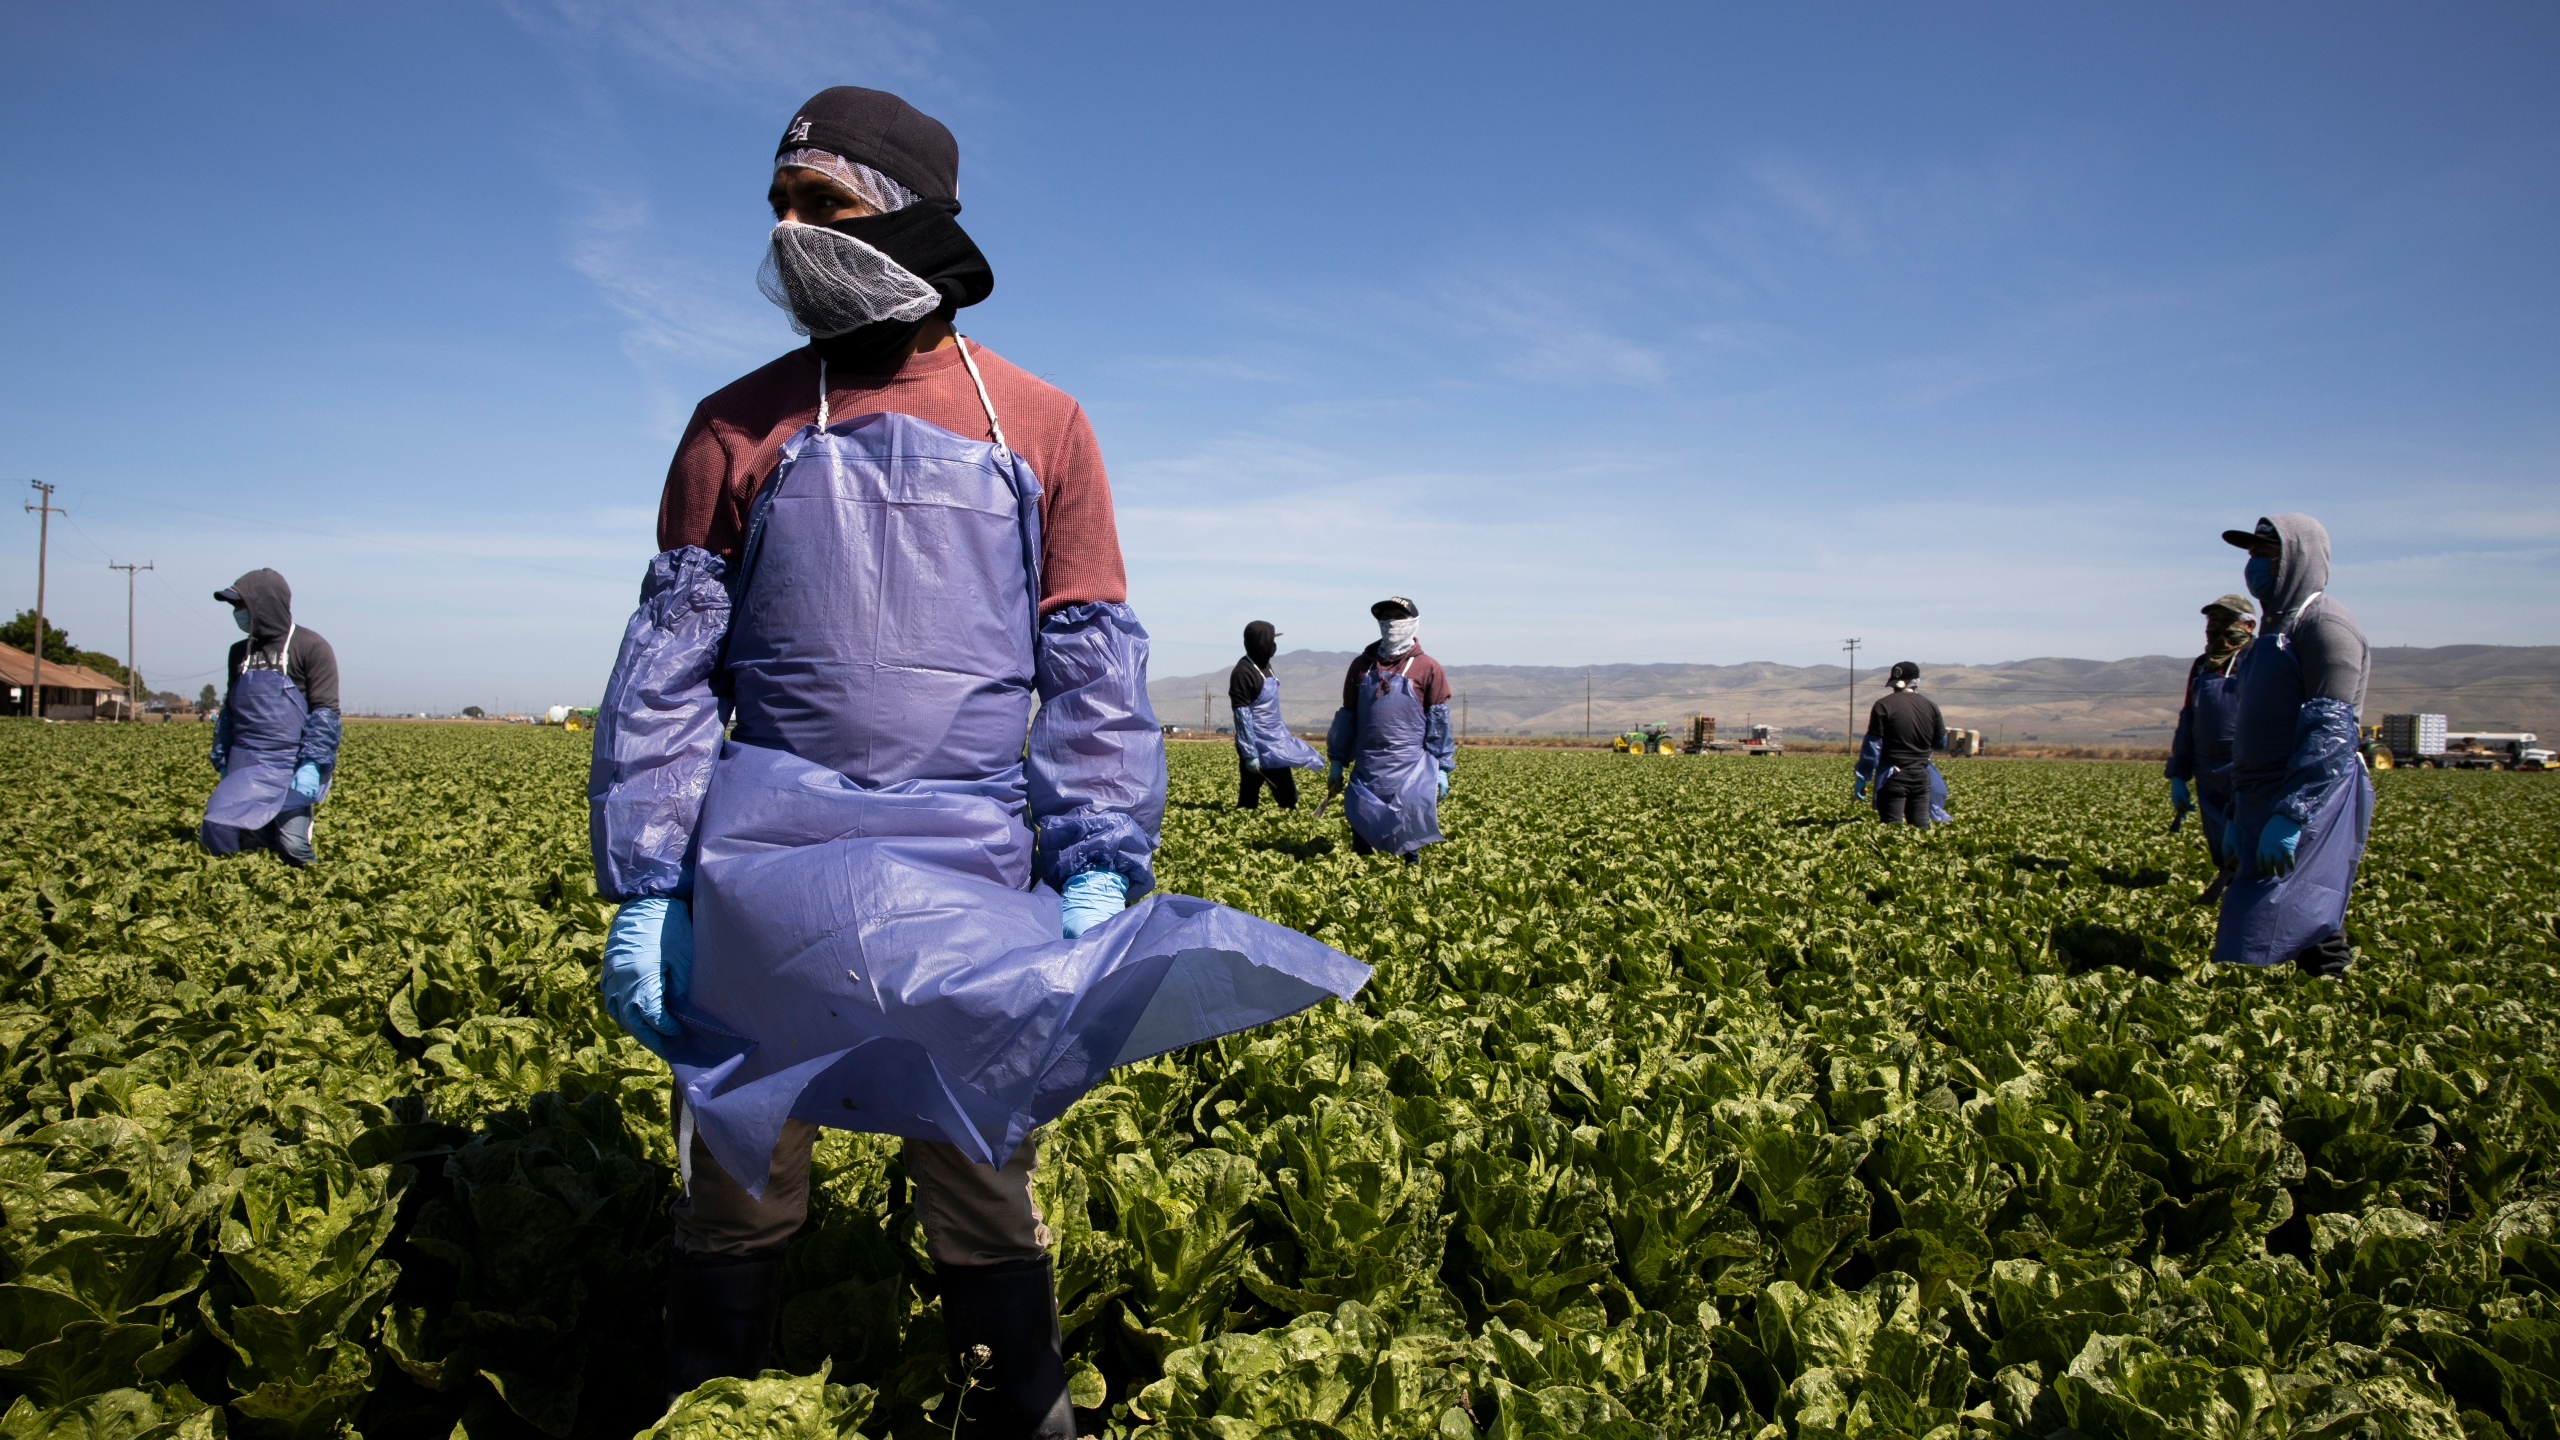 Farmworkers from Fresh Harvest maintain a safe distance as a machine is moved on April 27, 2020 in Greenfield. (Brent Stirton/Getty Images)